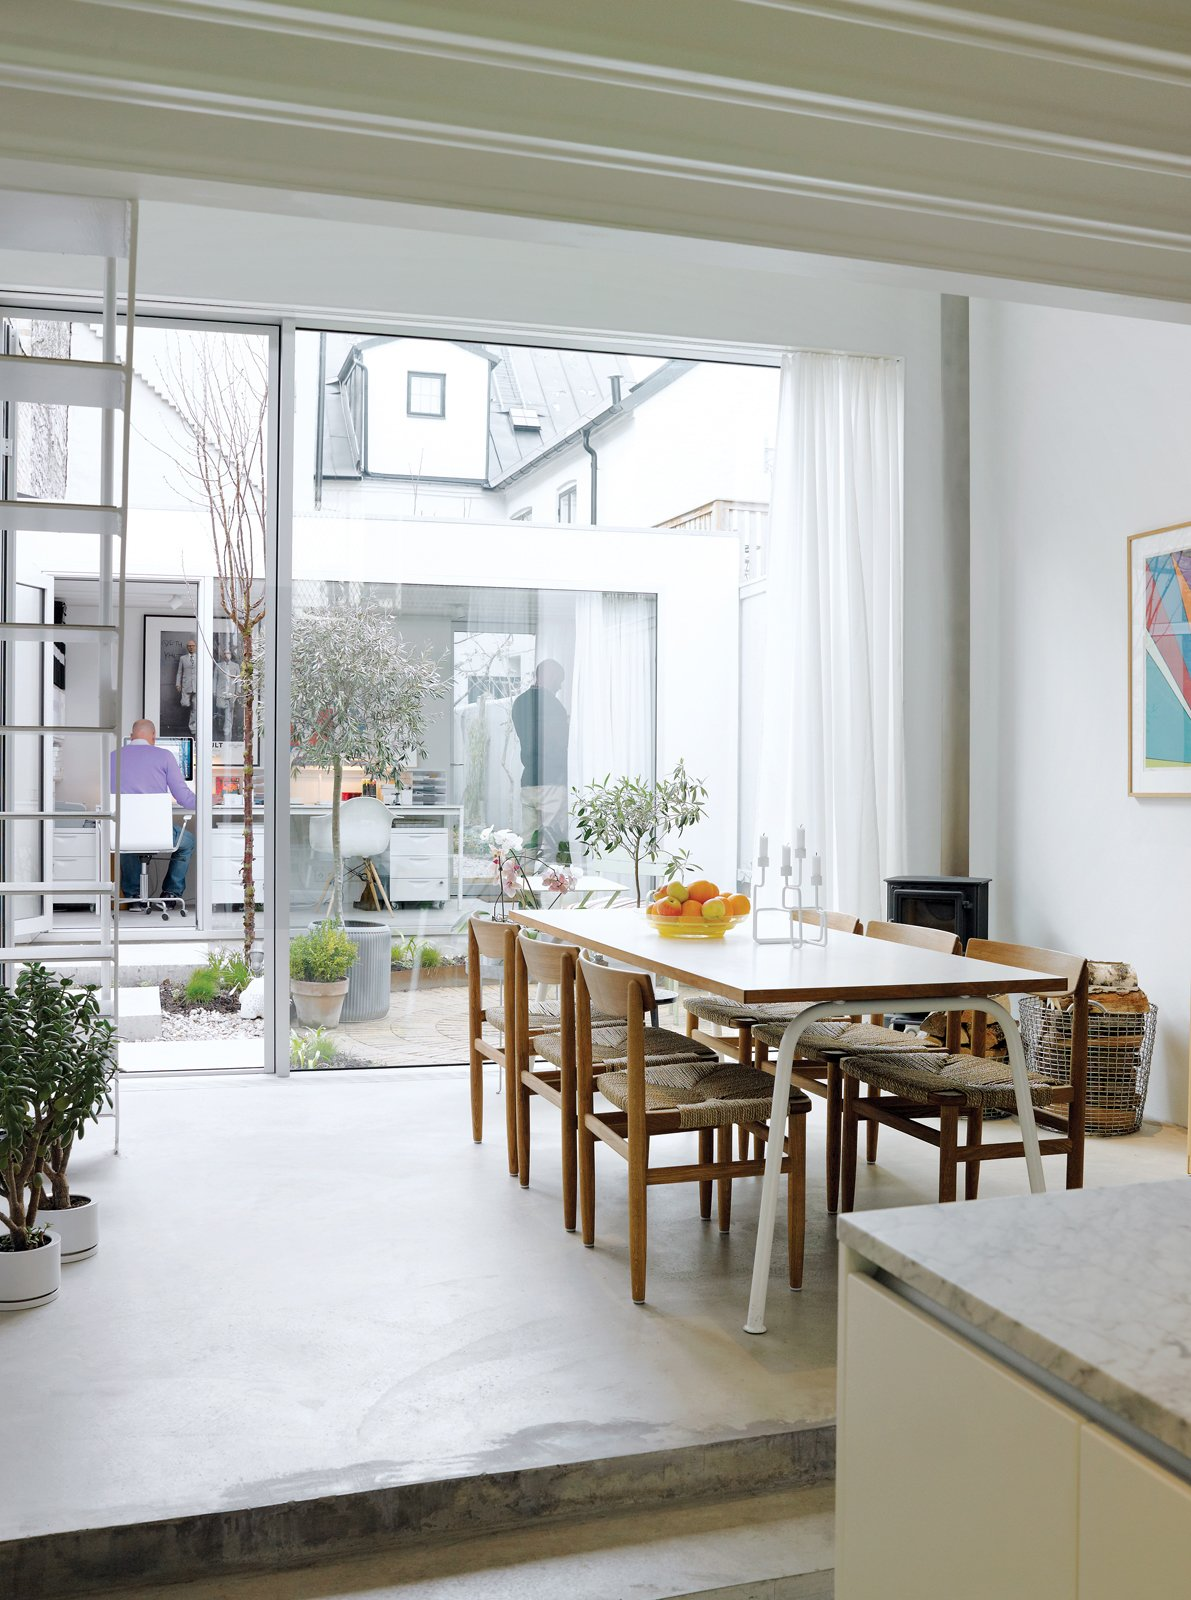 Dining Room, Table, Chair, and Concrete Floor The view from the kitchen is as lively as it is light, taking in the dining area, tiny courtyard garden, and the separate office building backed by the jumble of old buildings to the rear. The rustic dining chairs are by Börge Mogensen from Karl Andersson & Söner.  Photos from Contemporary Nordic Town House